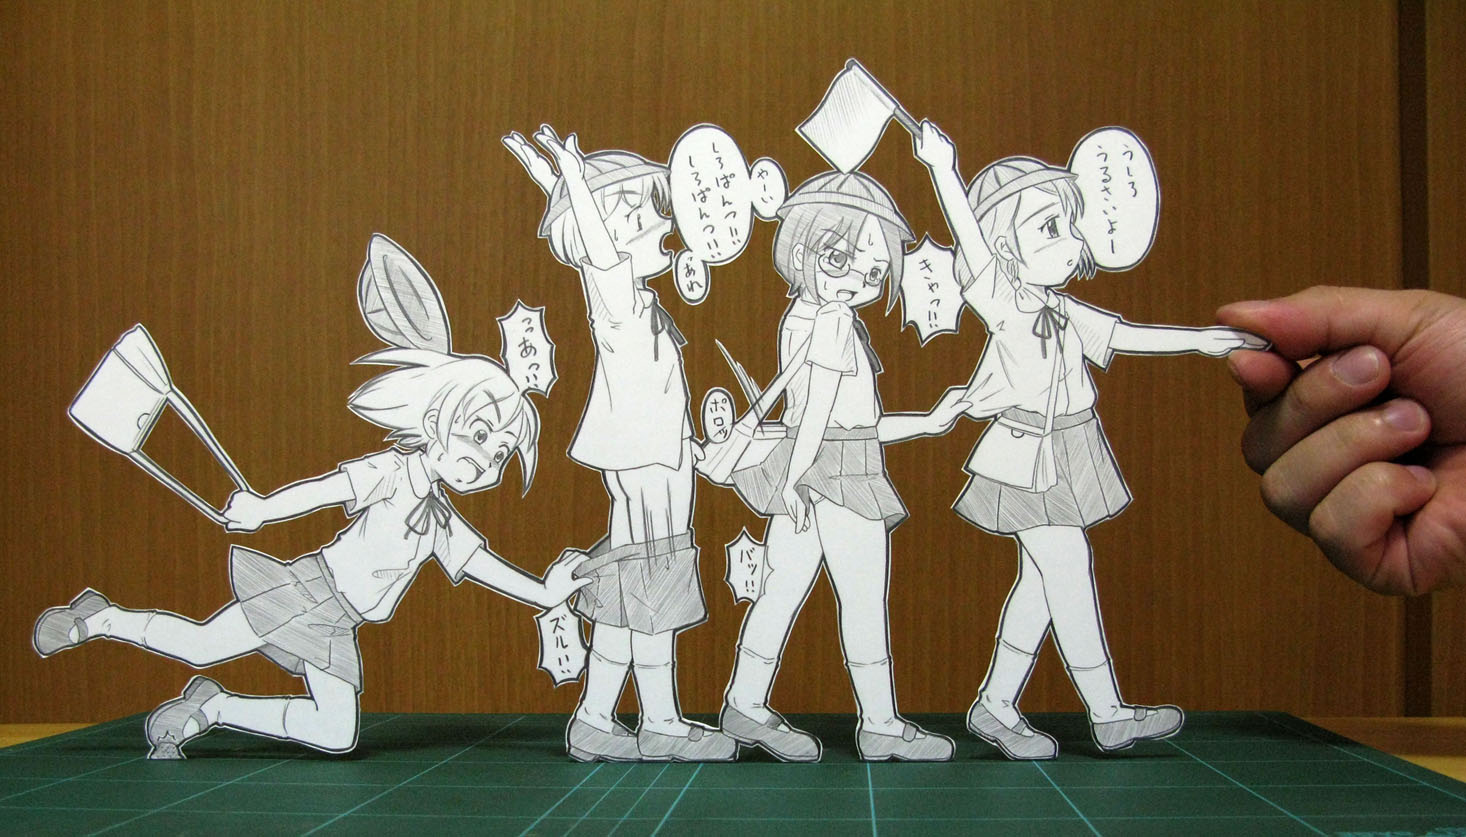 1boy 3girls accident arms up ass bag flag glasses hat holding minigirl multiple girls paper child papercraft penis photo ribbon